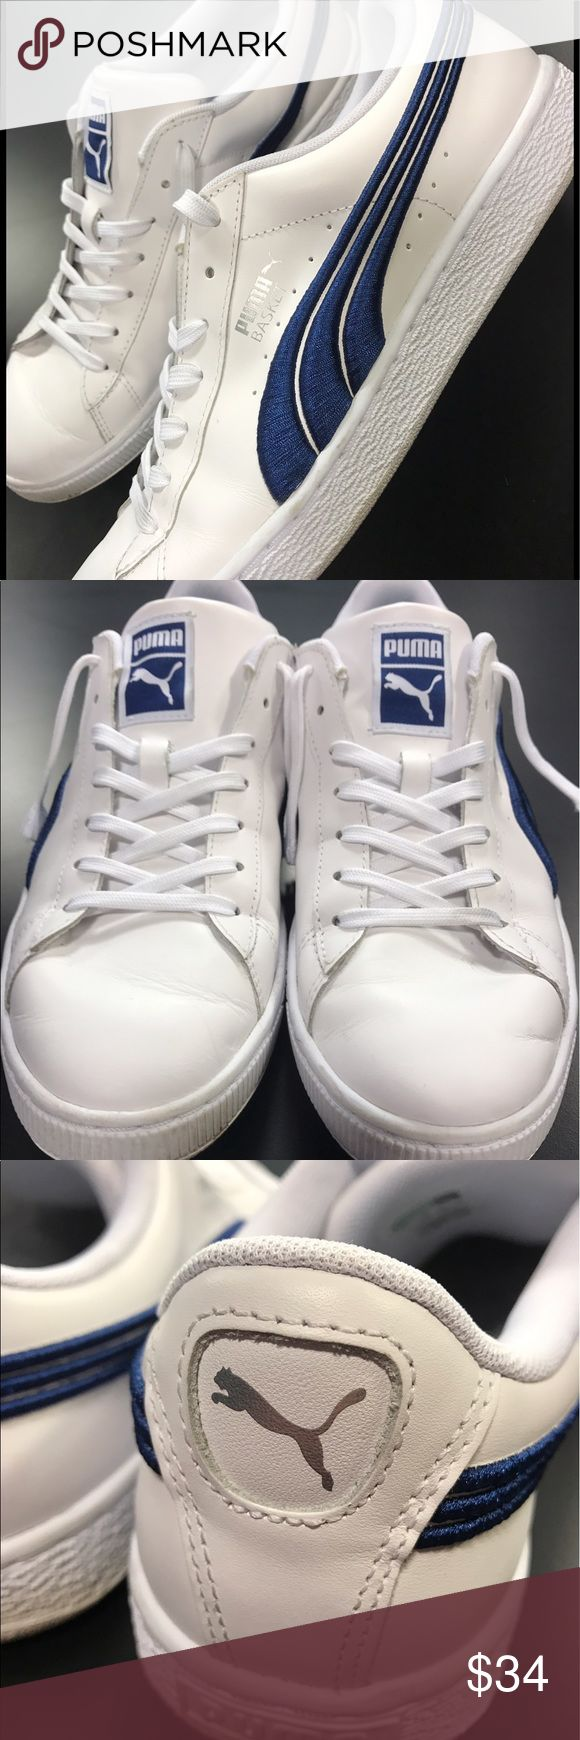 Puma Basket Tennis Shoe Sneaker Men's SZ 10 Classic tennis shoe; Clean lines; Dark blue basket style sneaker; comfy, cozy internal fit; Traditional lace up closure for secure fit. PUMA® Soft and breathable woven mesh and lightly padded footbed for all-day comfort. Puma Shoes Sneakers